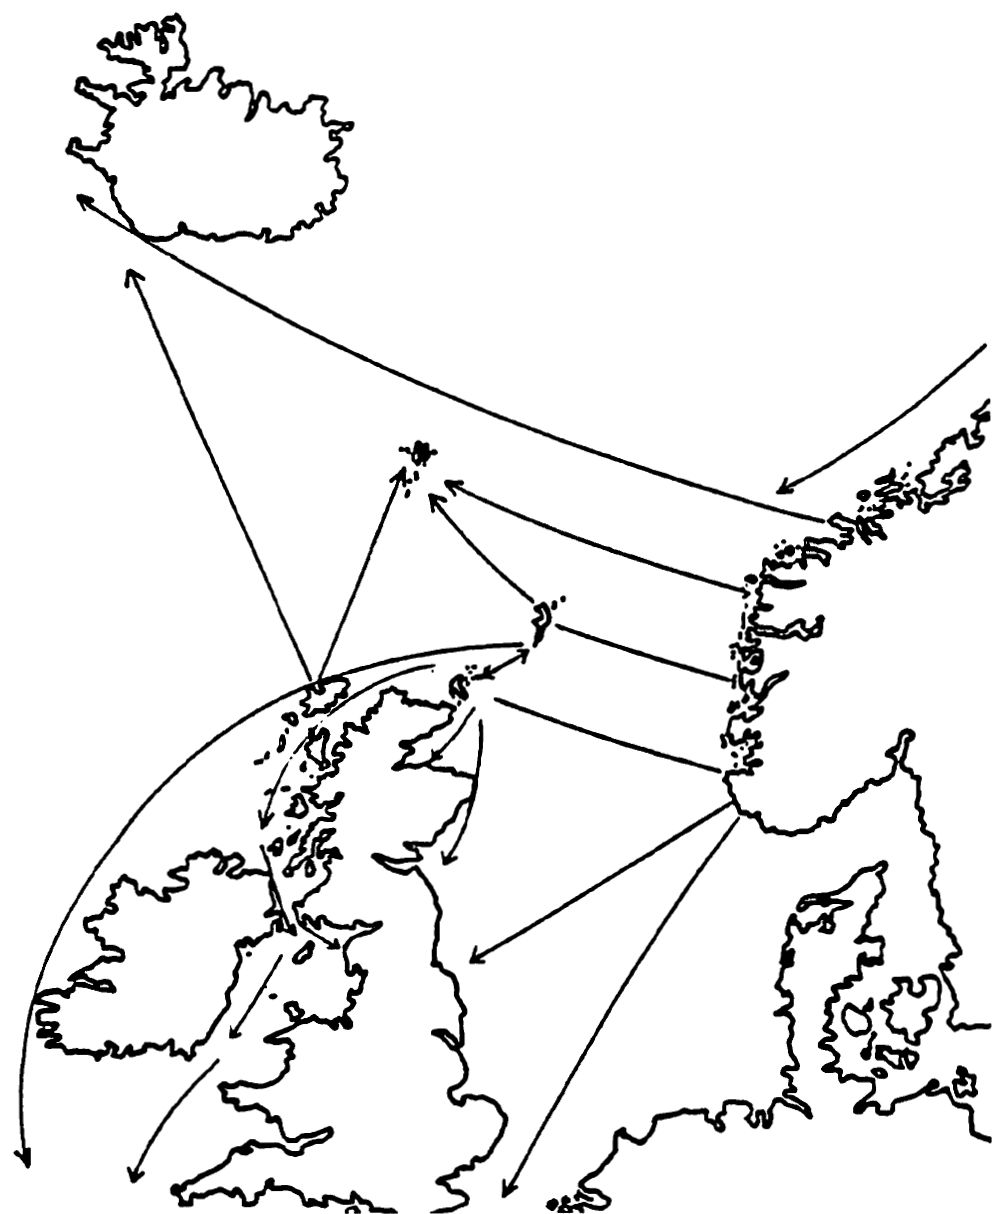 Viking trade routes in the Northern Atlantic (source: Steffen Stummann Hansen: Aspects of Viking-Age Society in Shetland and the Faroe Islands. In: D. Waugh (ed.): Shetland's Northern Links: Language and History. Lerwick (: The Scottish Society for Northern Studies), 1996, s 118.)